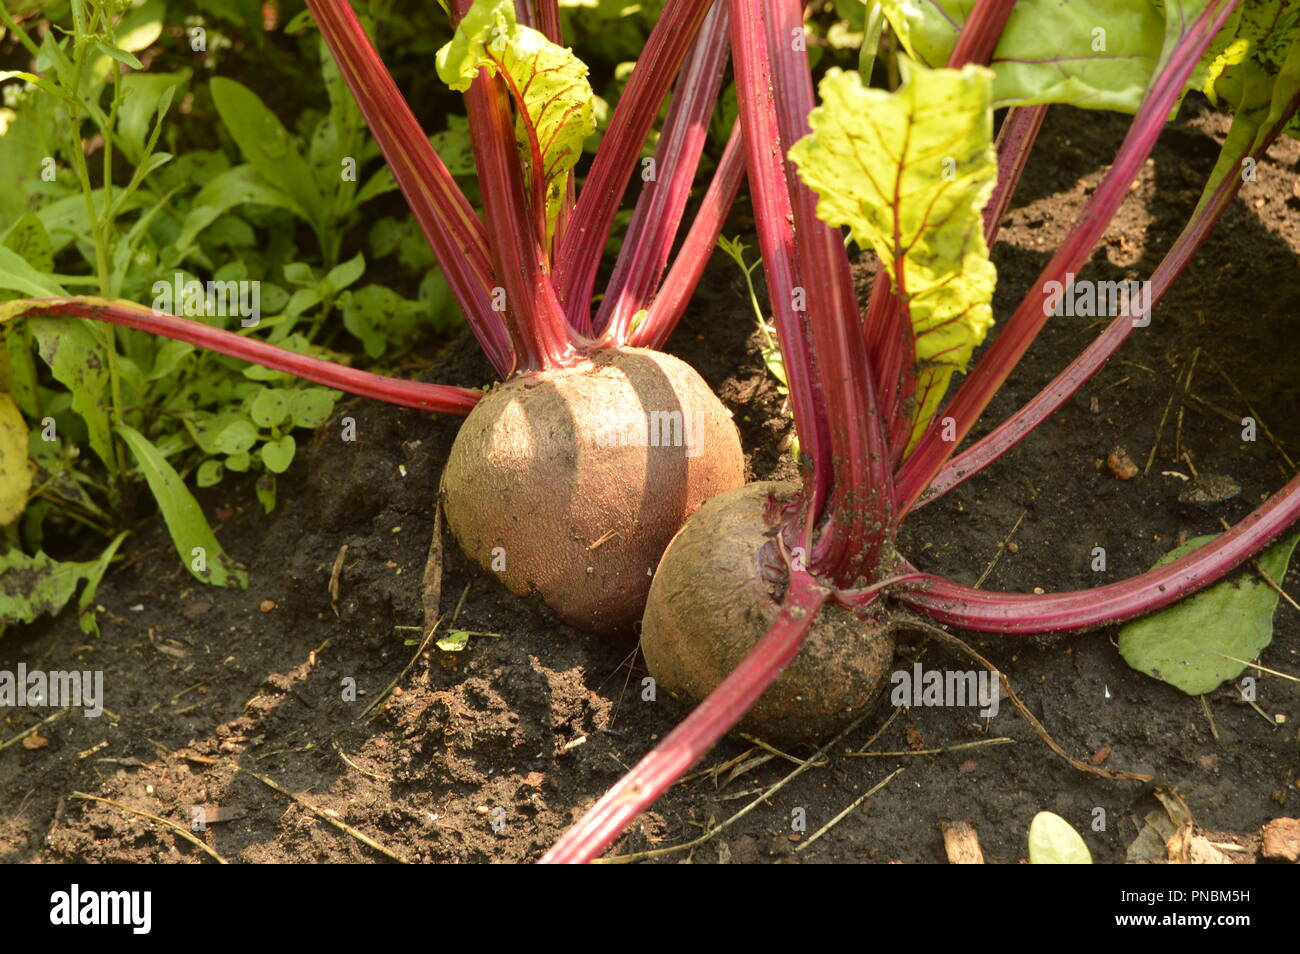 Beets grow in the soil on a vegetable garden on a Sunny day Stock Photo